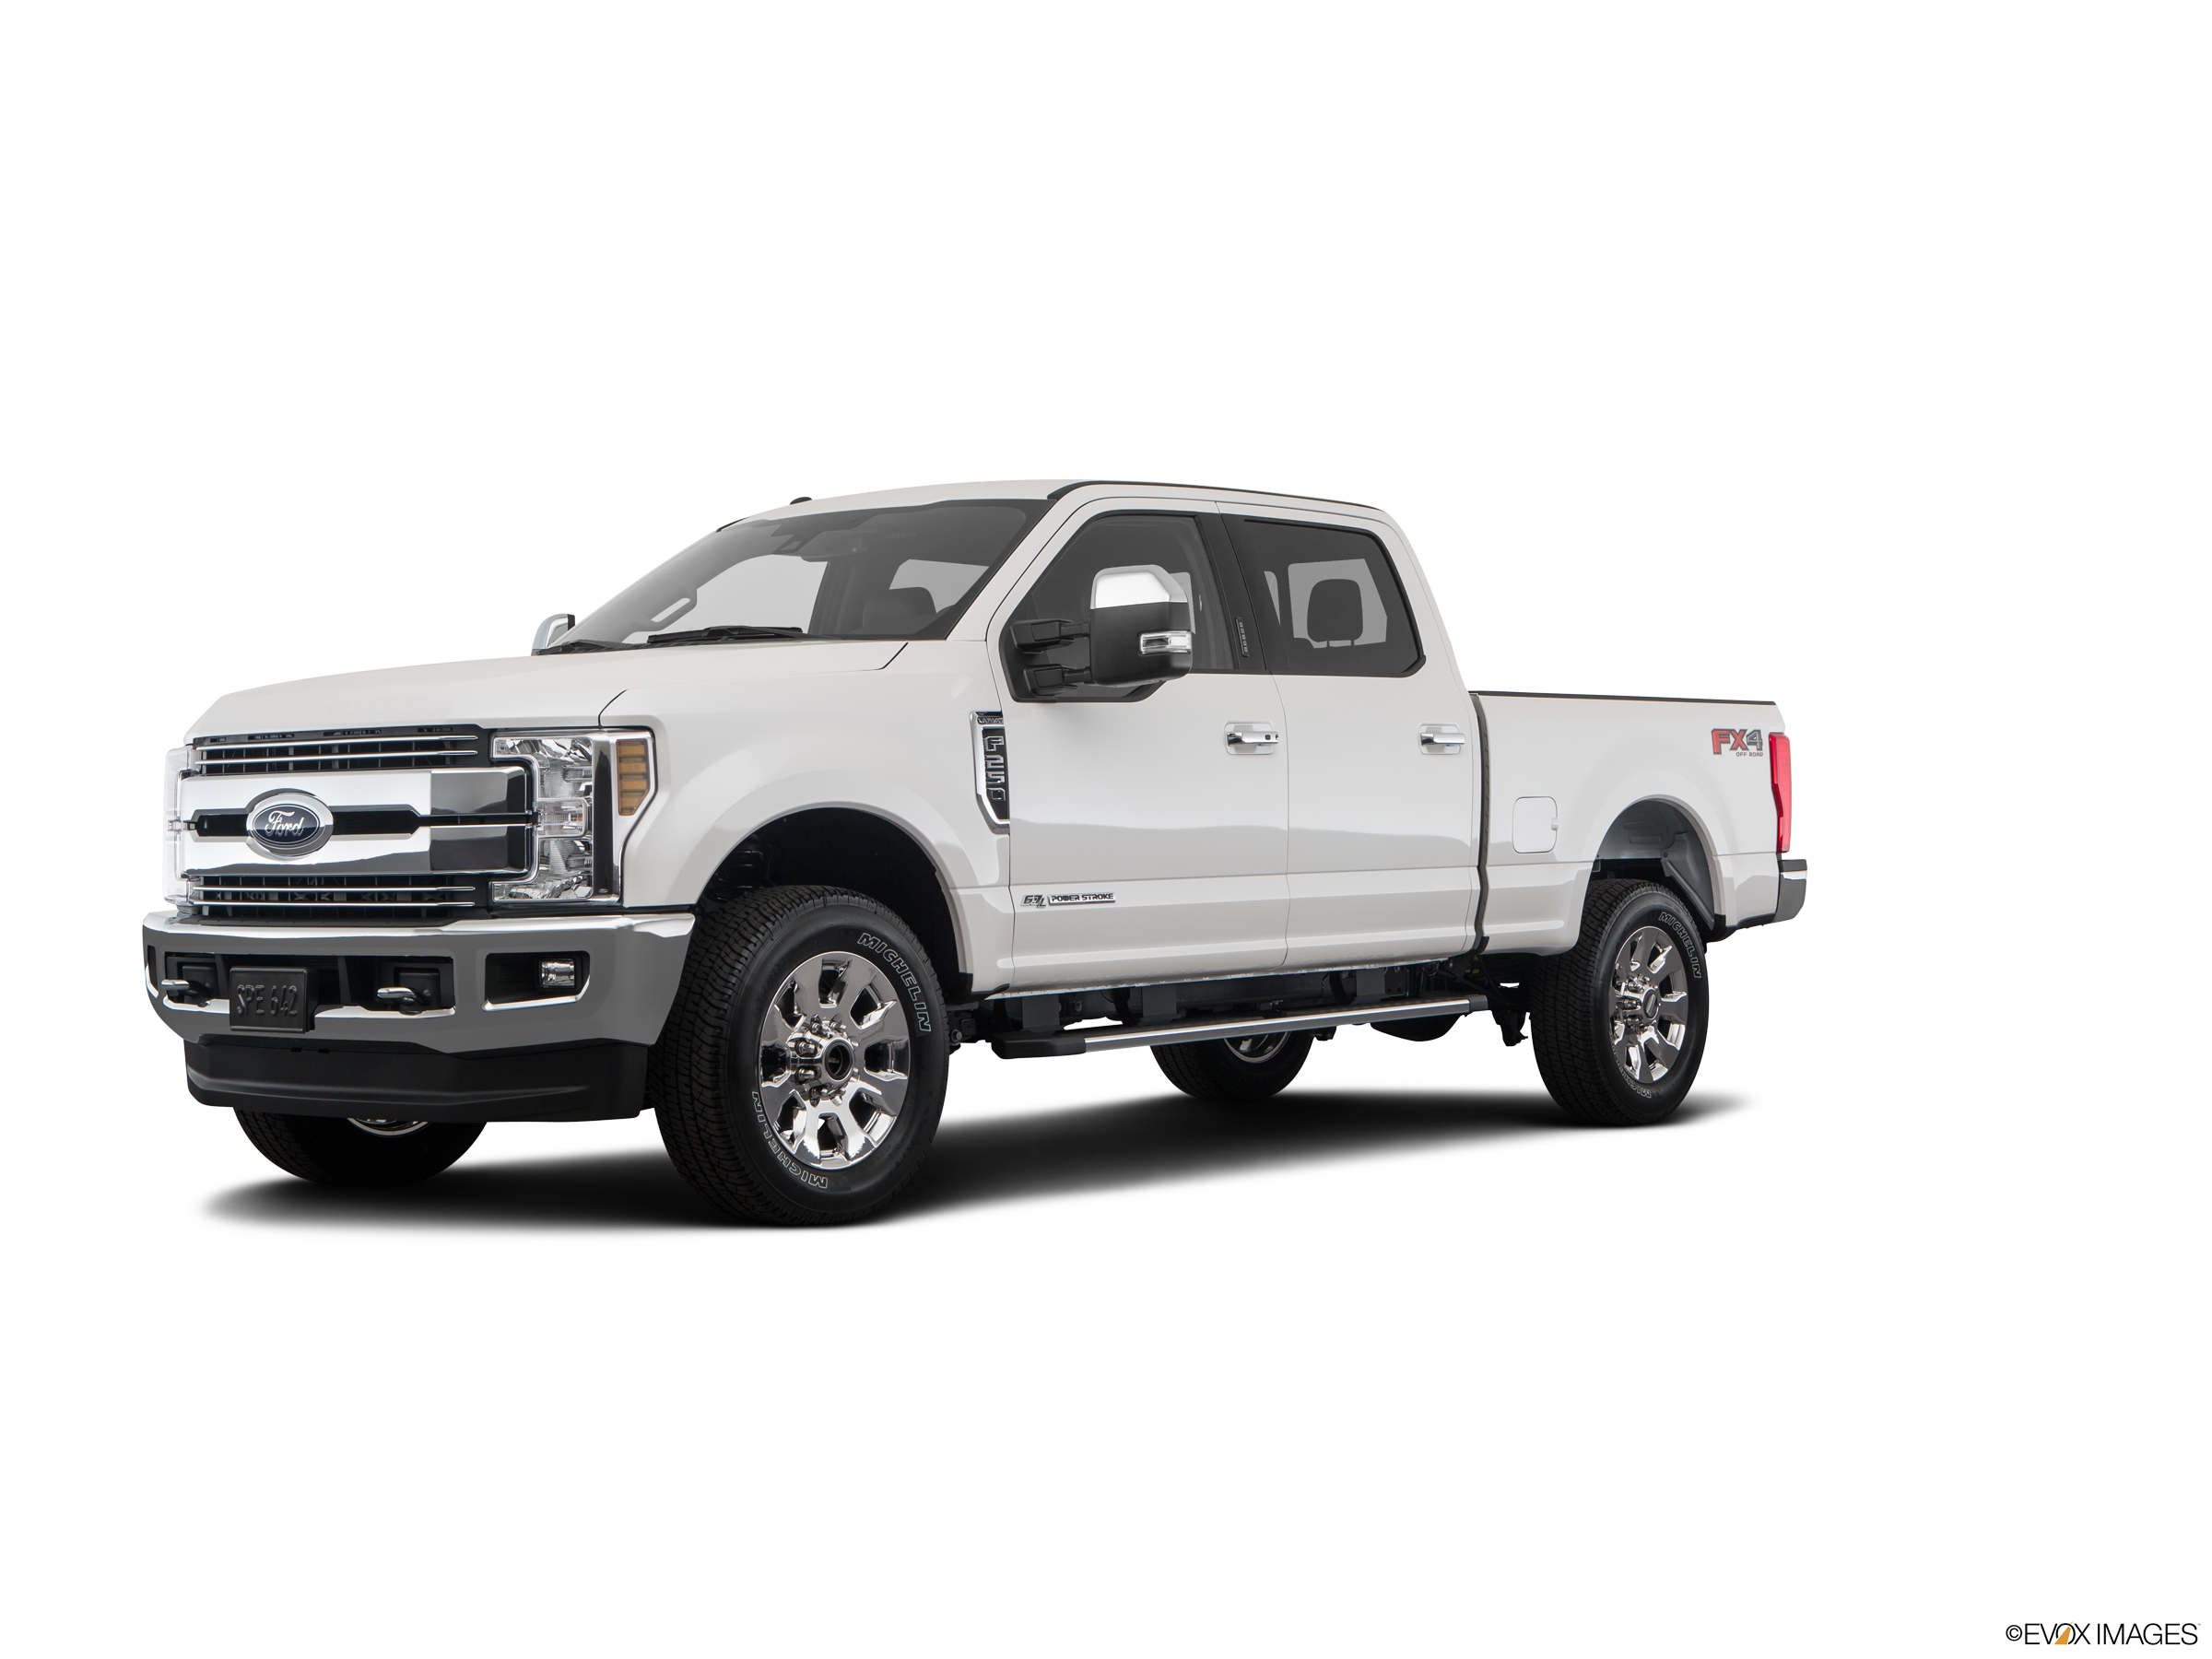 Ford F250 8 Foot Bed For Sale >> 2018 Ford F250 Super Duty Crew Cab Pricing Ratings Expert Review